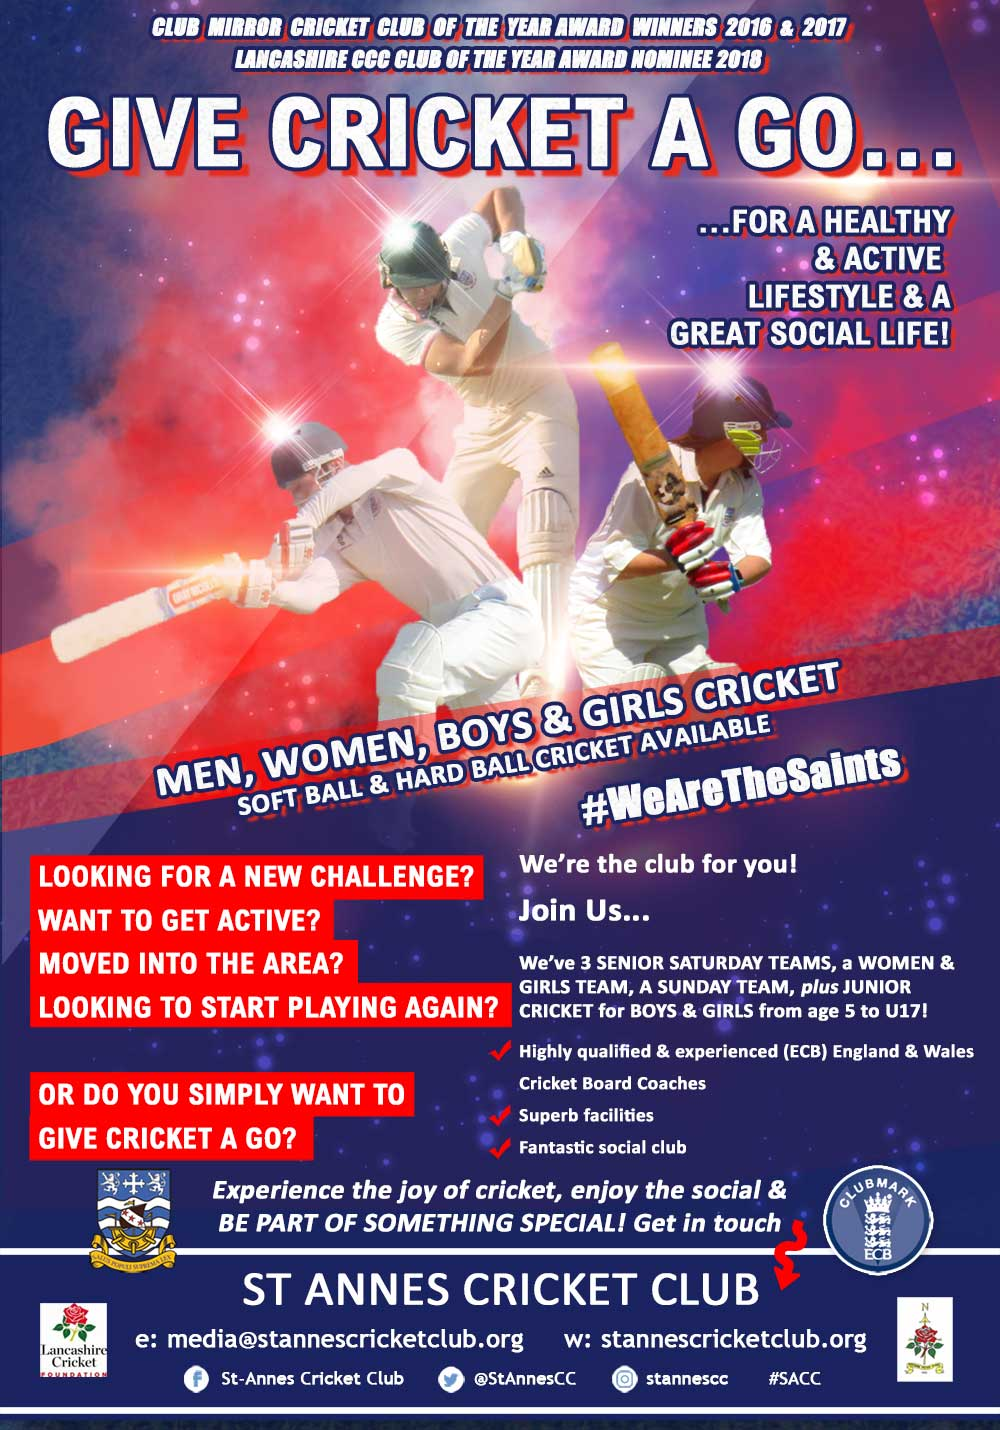 Enjoy the social & give cricket a go! Beginners & experienced men, women, boys & girls welcome at St Annes CC